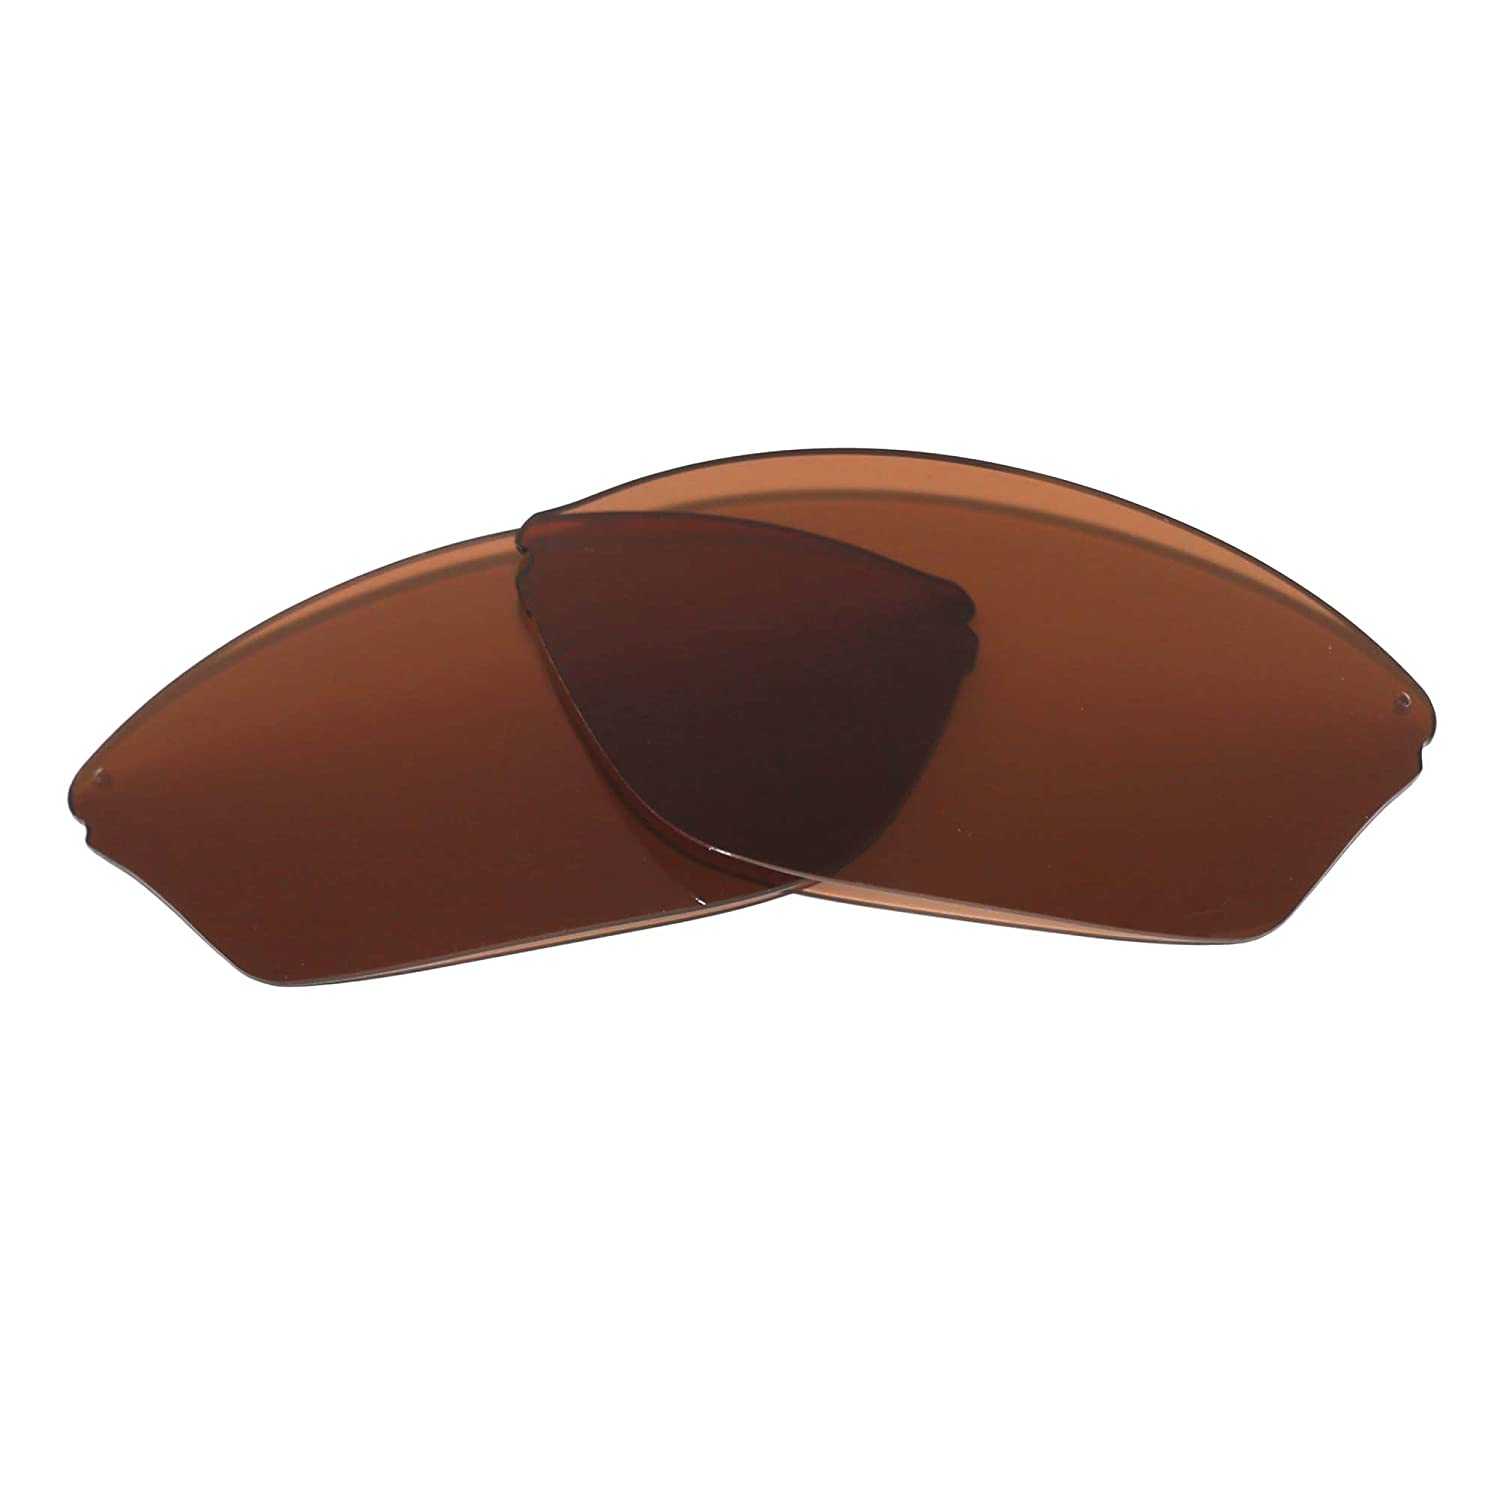 Walleva Replacement Lenses for Maui Jim Hot Sands Sunglasses - Multiple Options Available (Brown - Polarized)